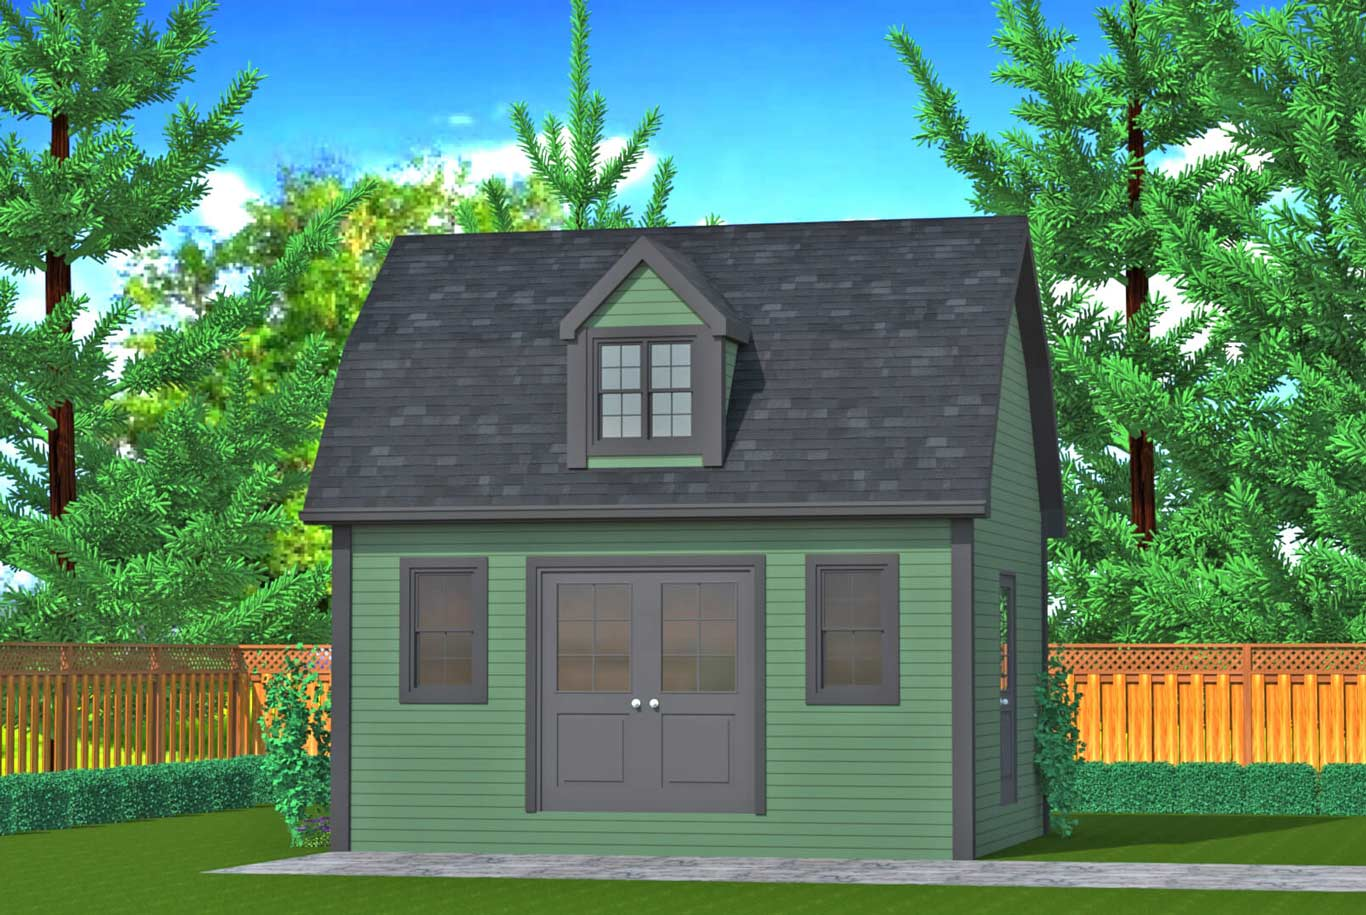 252 sq.ft. timber mart shed green wood finish and french door